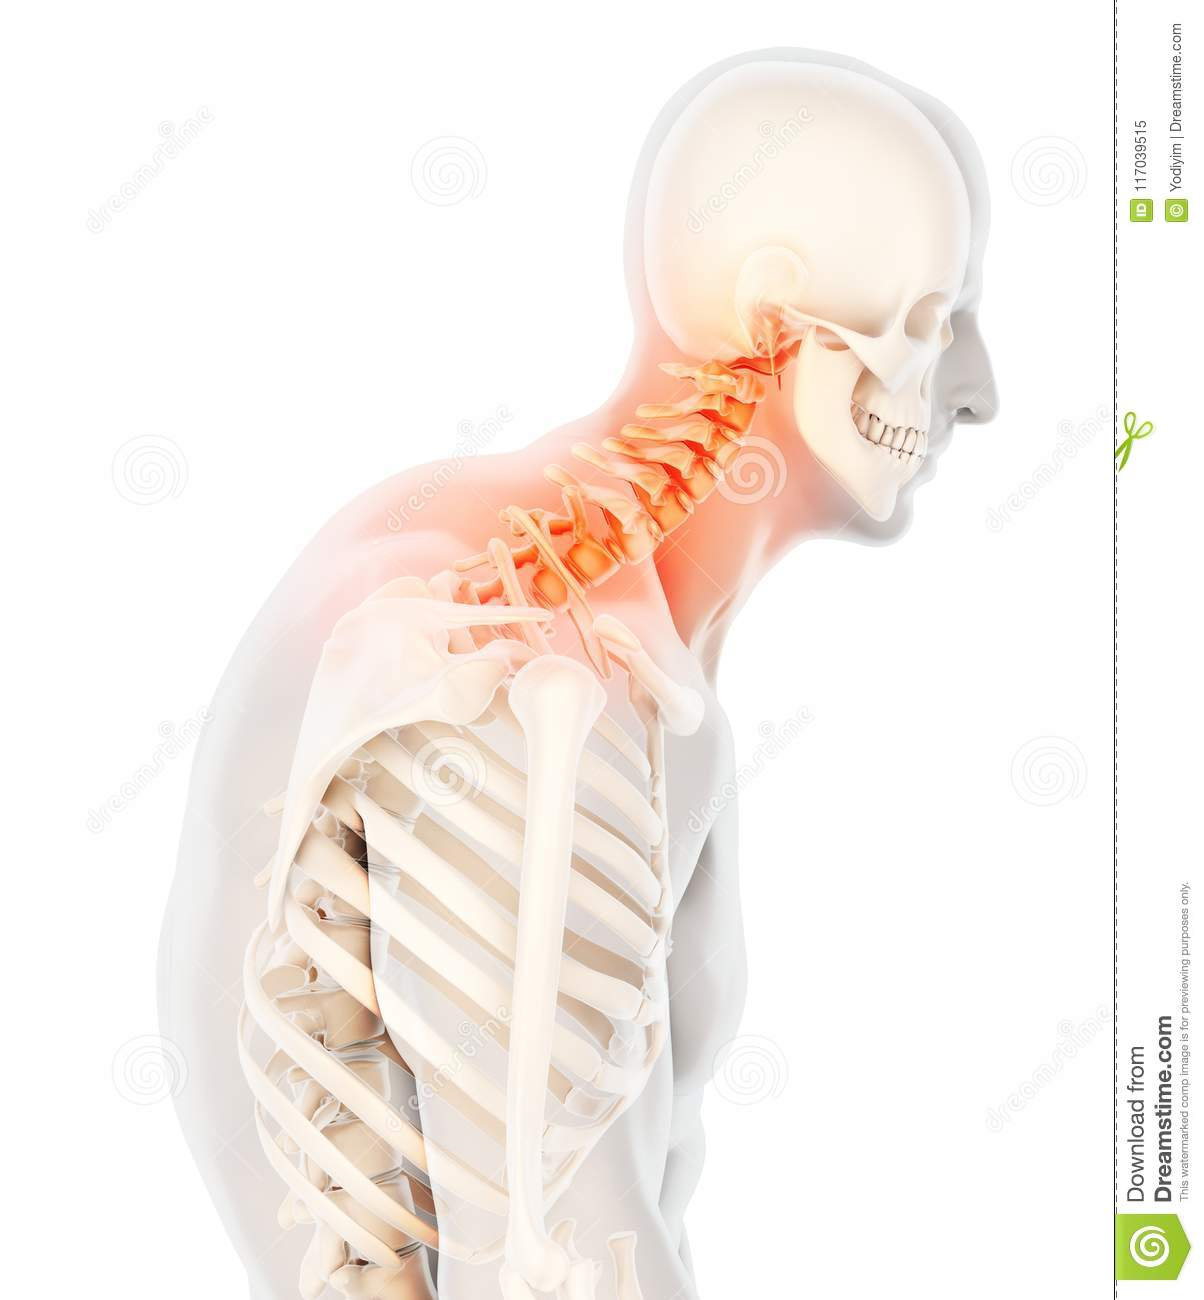 Neck Painful Cervical Spine Skeleton X Ray 3d Illustration Stock